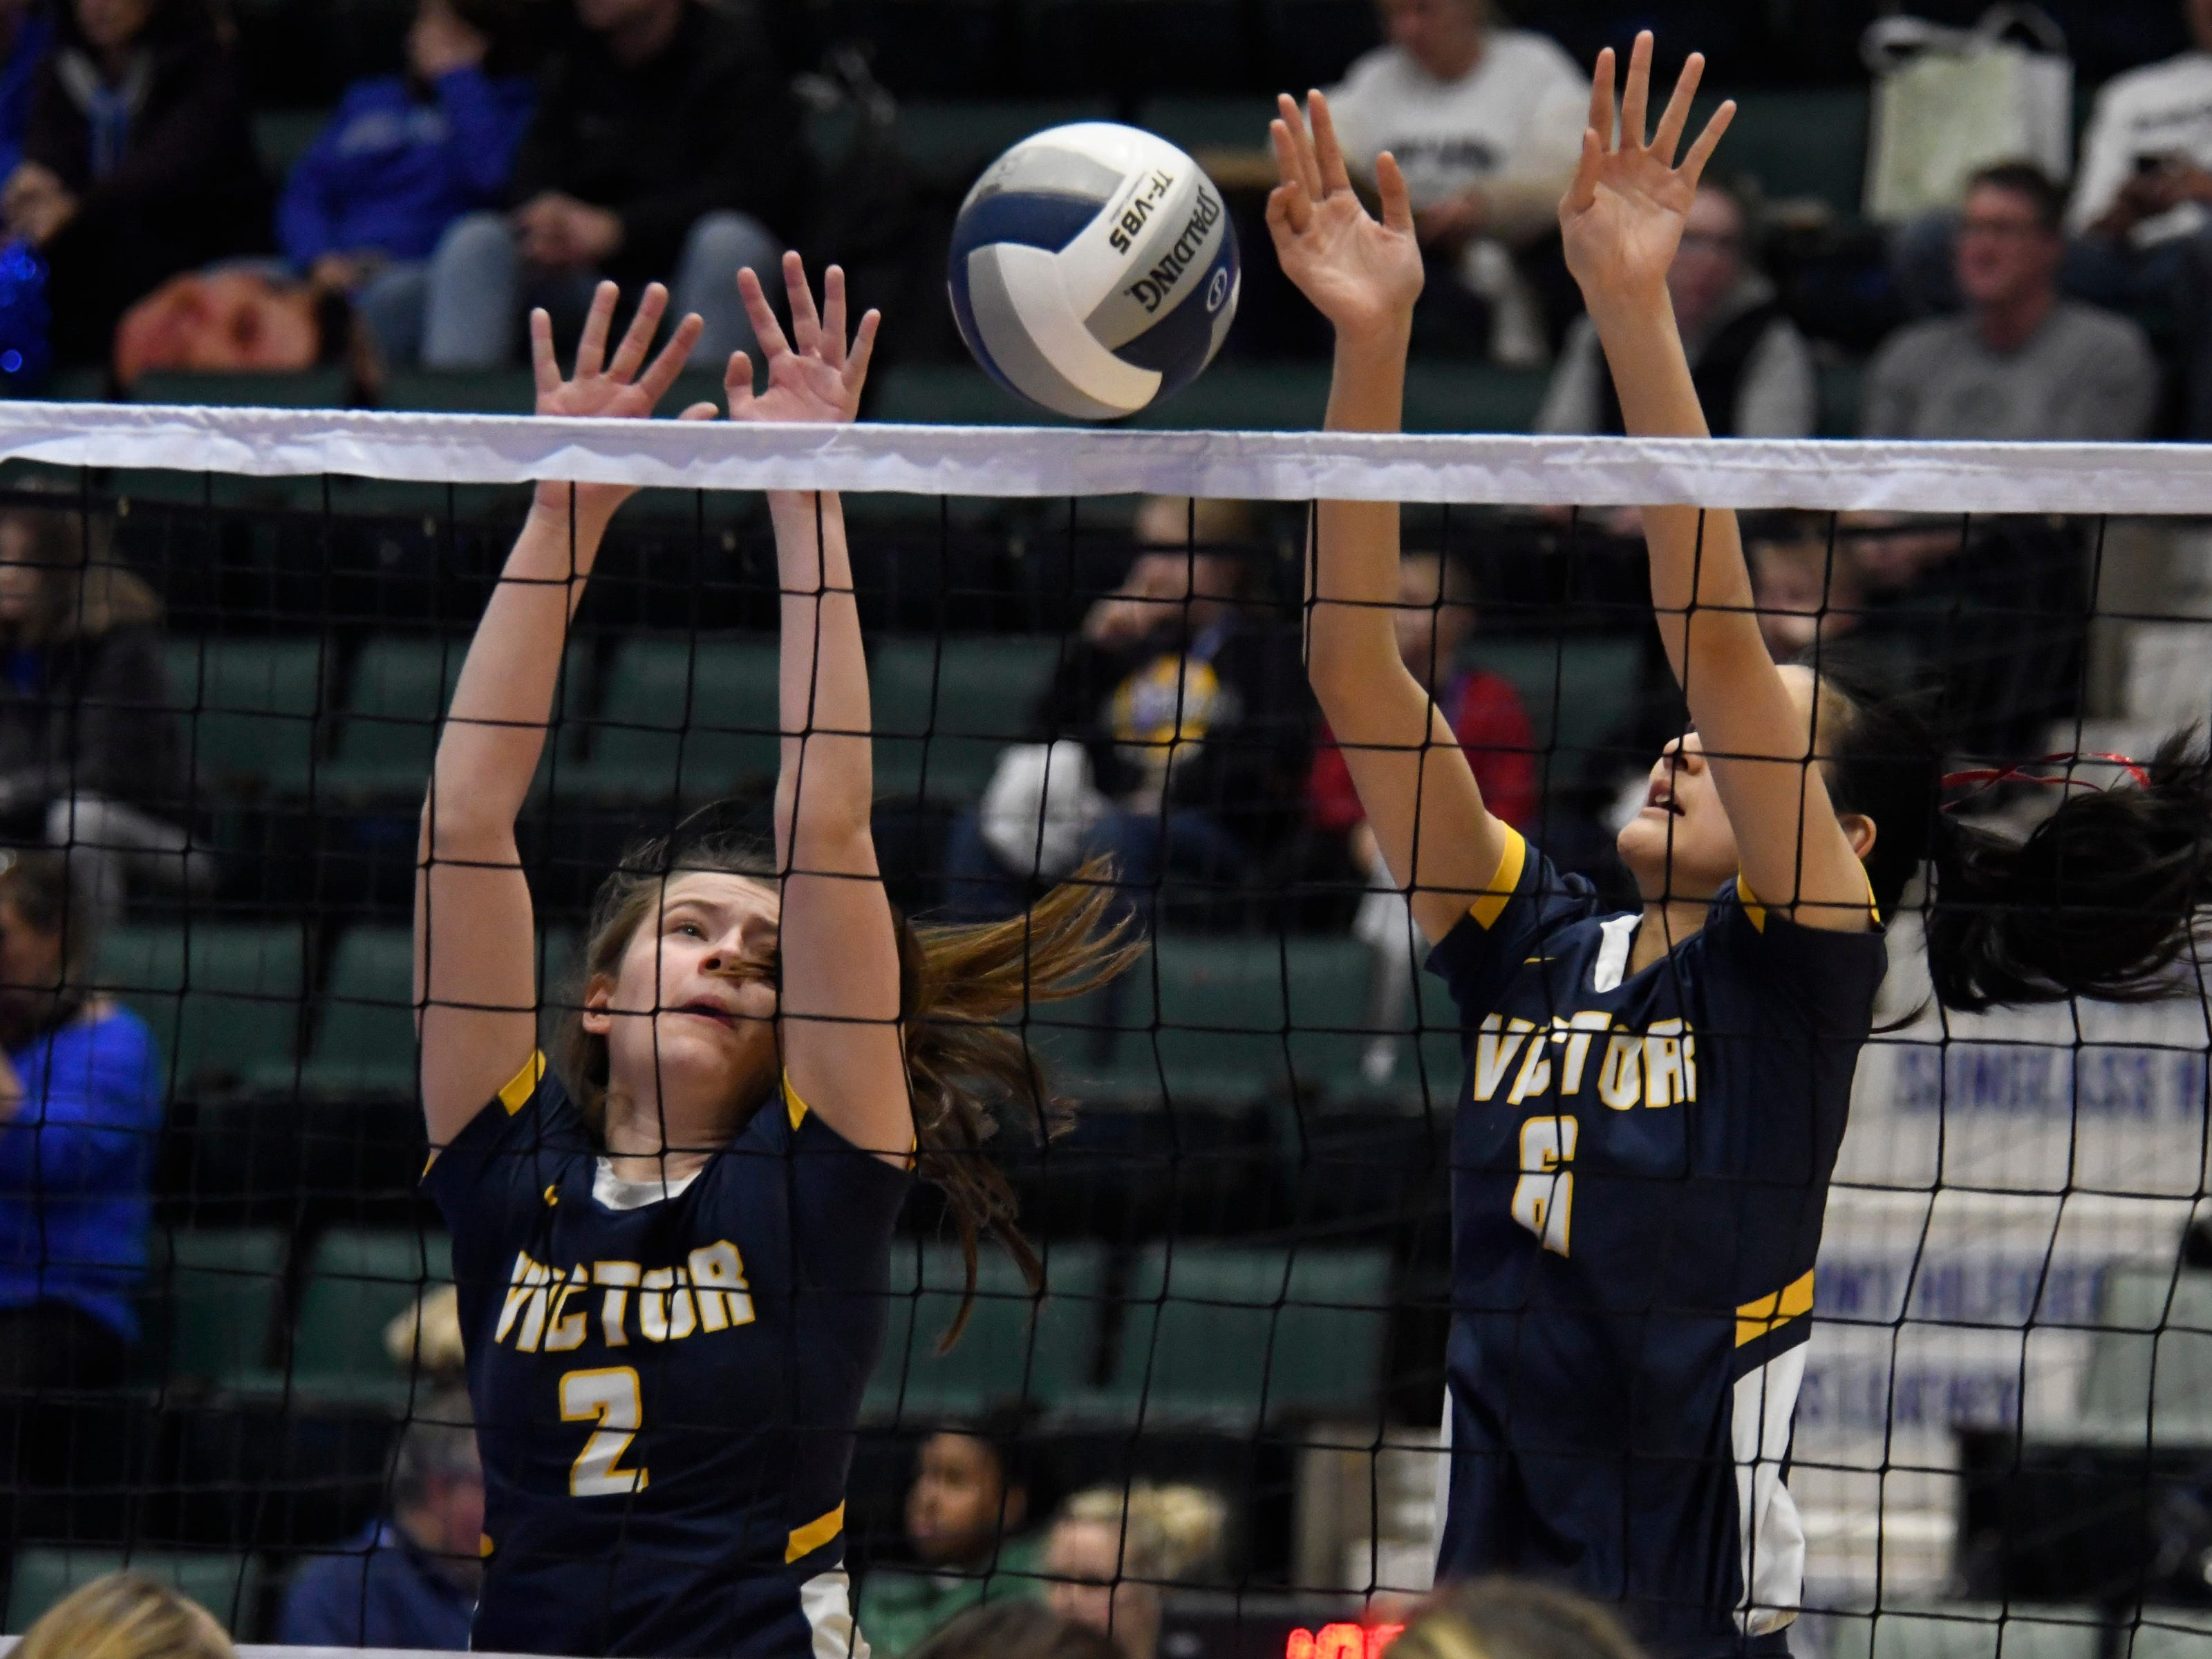 Victor's Ally Devitt (2) and Helen Qian jump to block the ball during a Class AA state semifinal pool game against Shenendehowa on Saturday, Nov. 17, 2018, at Cool Insuring Arena in Glens Falls.